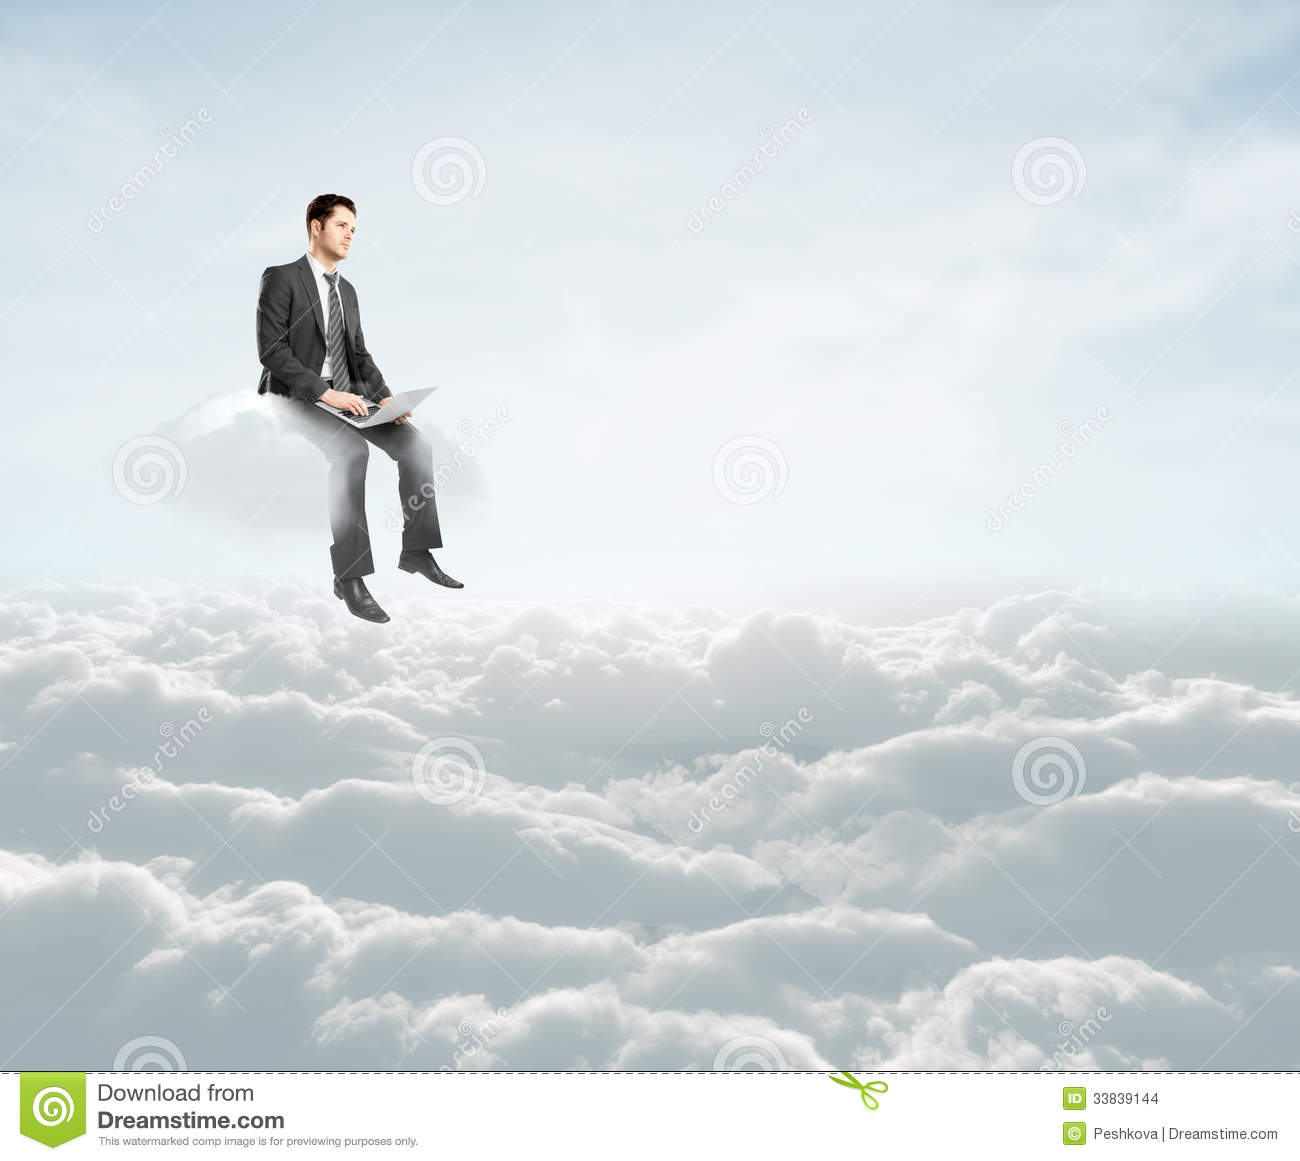 Man Sitting On Cloud Stock Photo Image Of Contemporary 33839144 Sur.ly for wordpress sur.ly plugin for wordpress is free of charge. dreamstime com